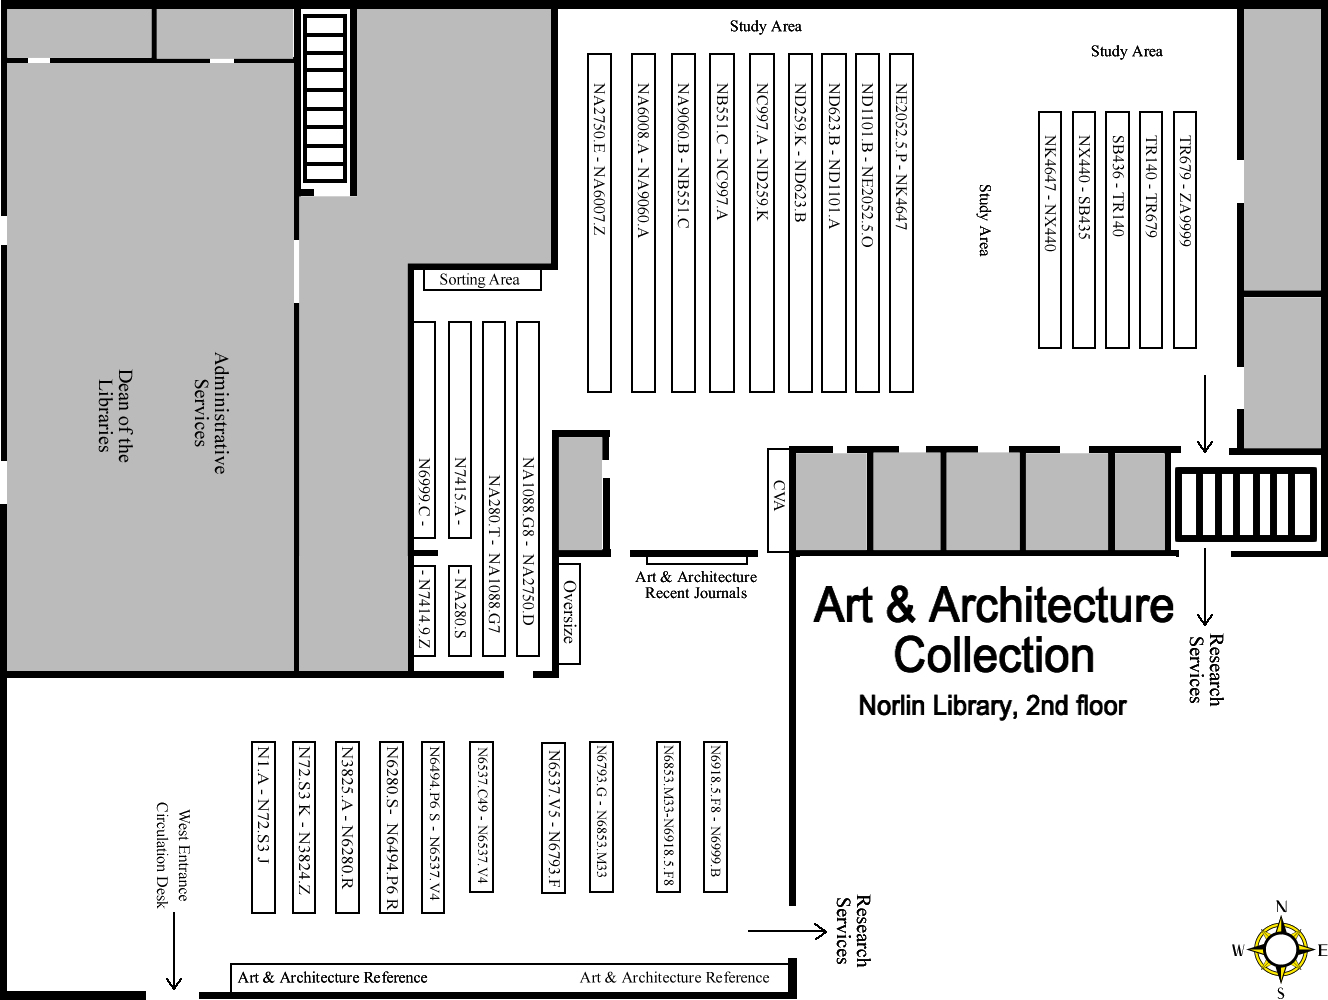 Art & Architecture Stacks Map